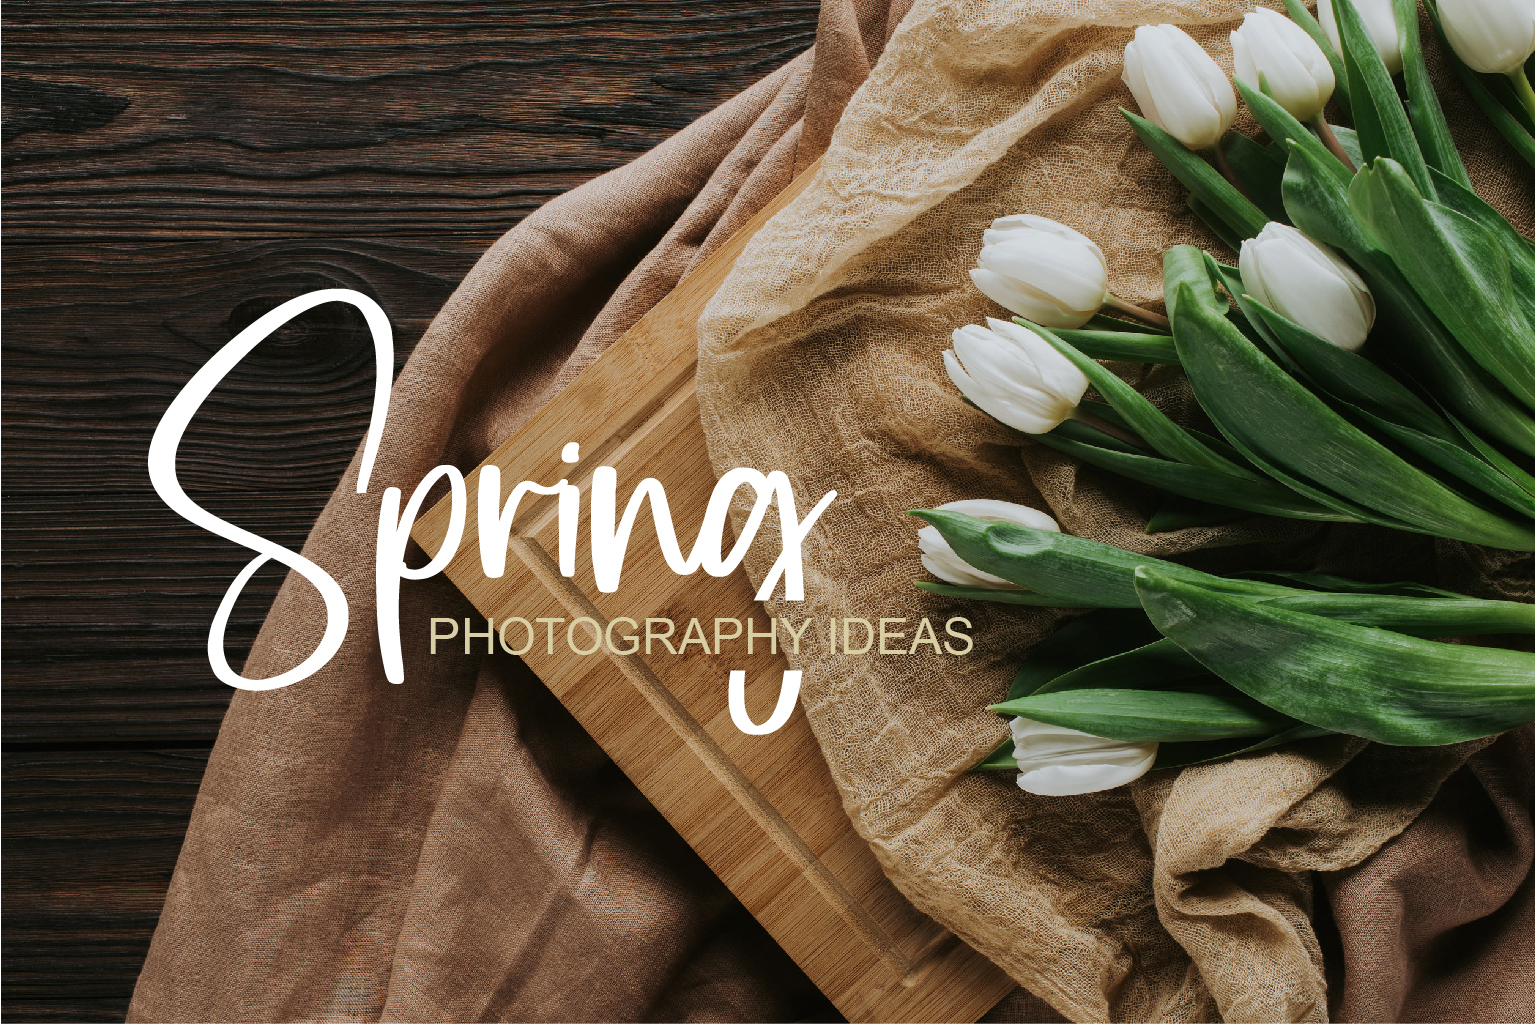 5 Spring Photography Ideas You Won't Wanna Miss Out